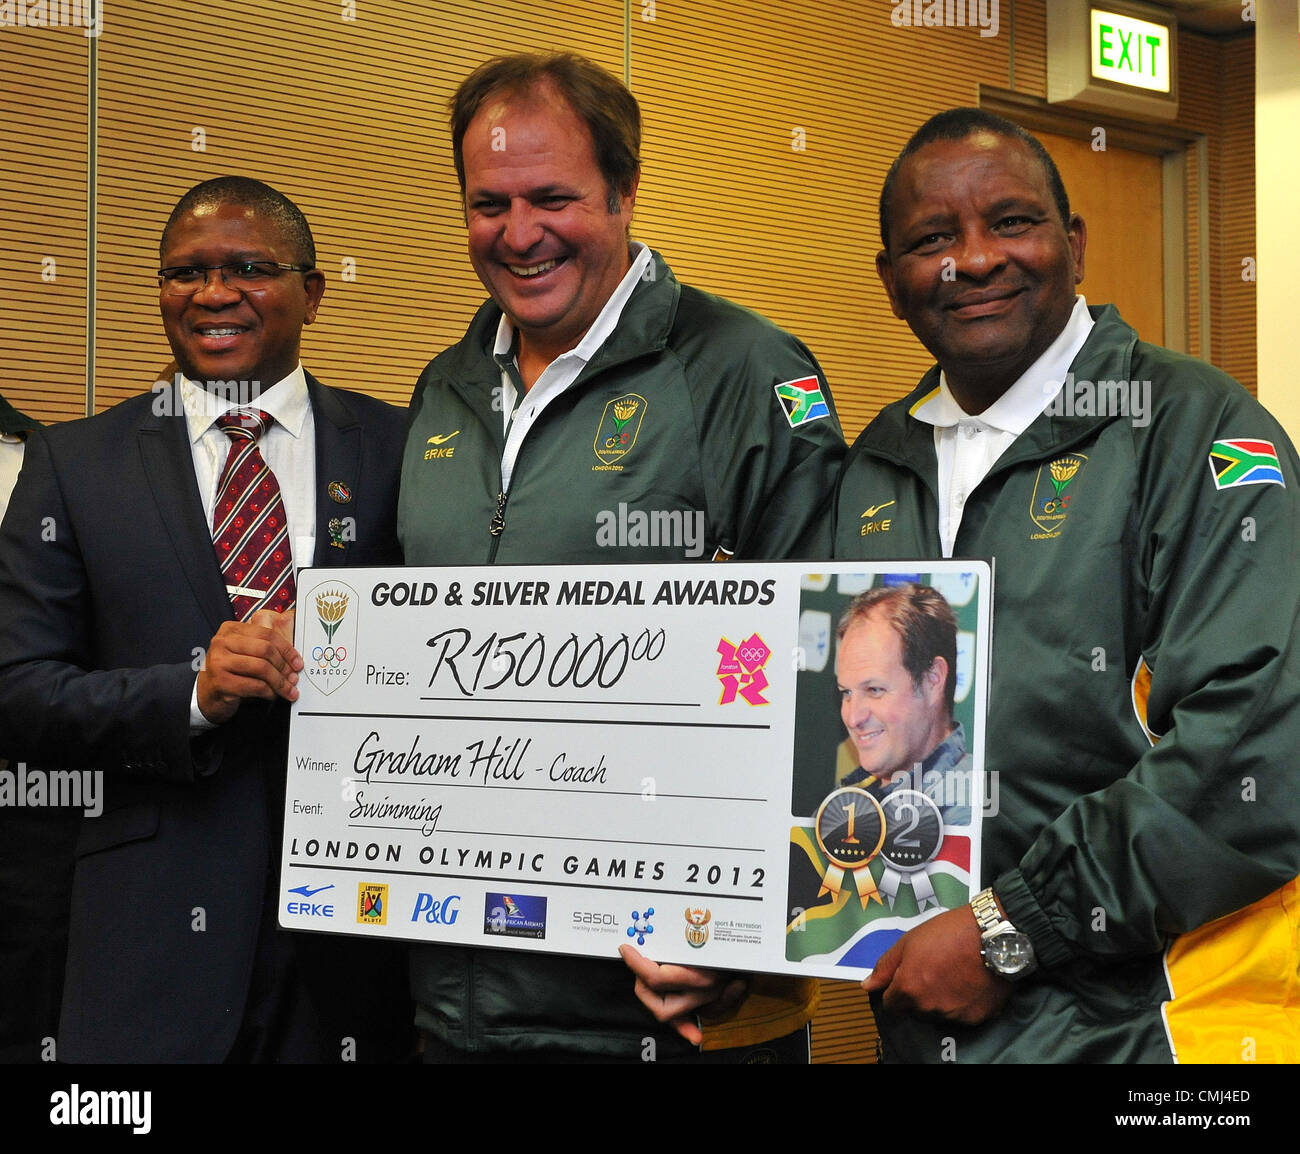 14th Aug 2012 Johannesburg, South Africa. Swiiming coach Graham Hill with Fikile Mdlalula and Gideon Sam during - Stock Image